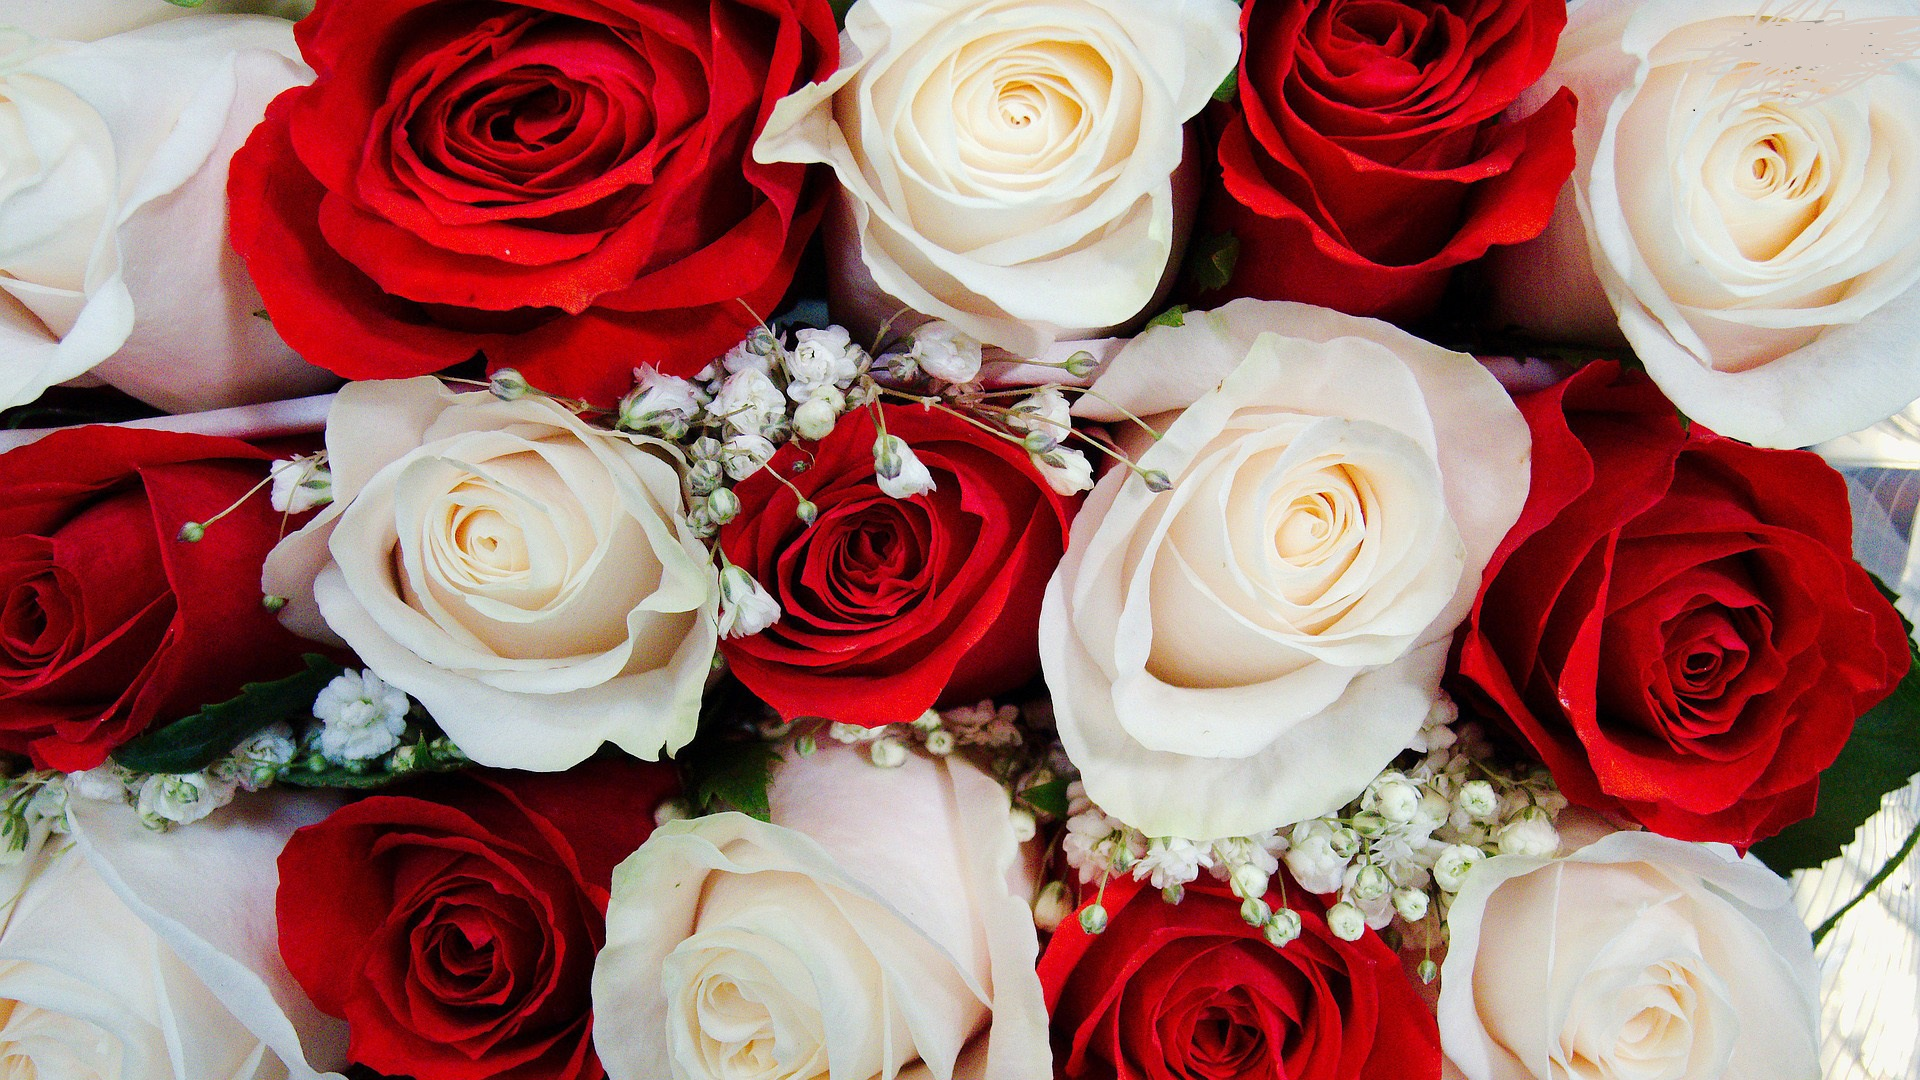 Amazing Red White Roses Free Wallpapers Hd